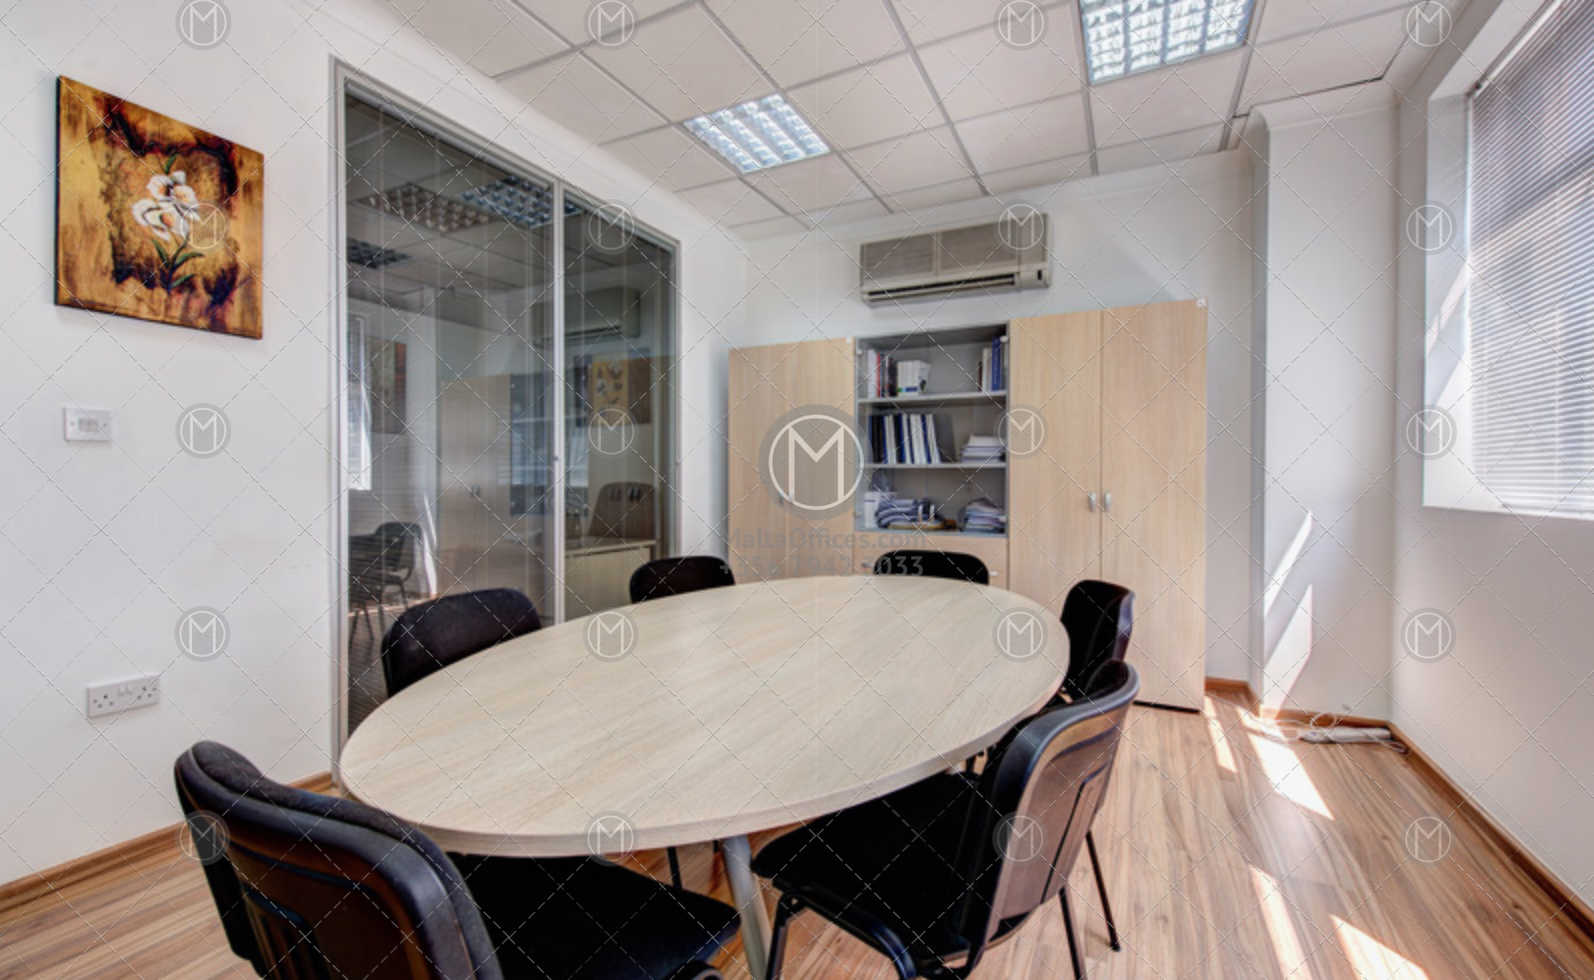 135m2 Offices in Gwardamanga for Rent - (4)